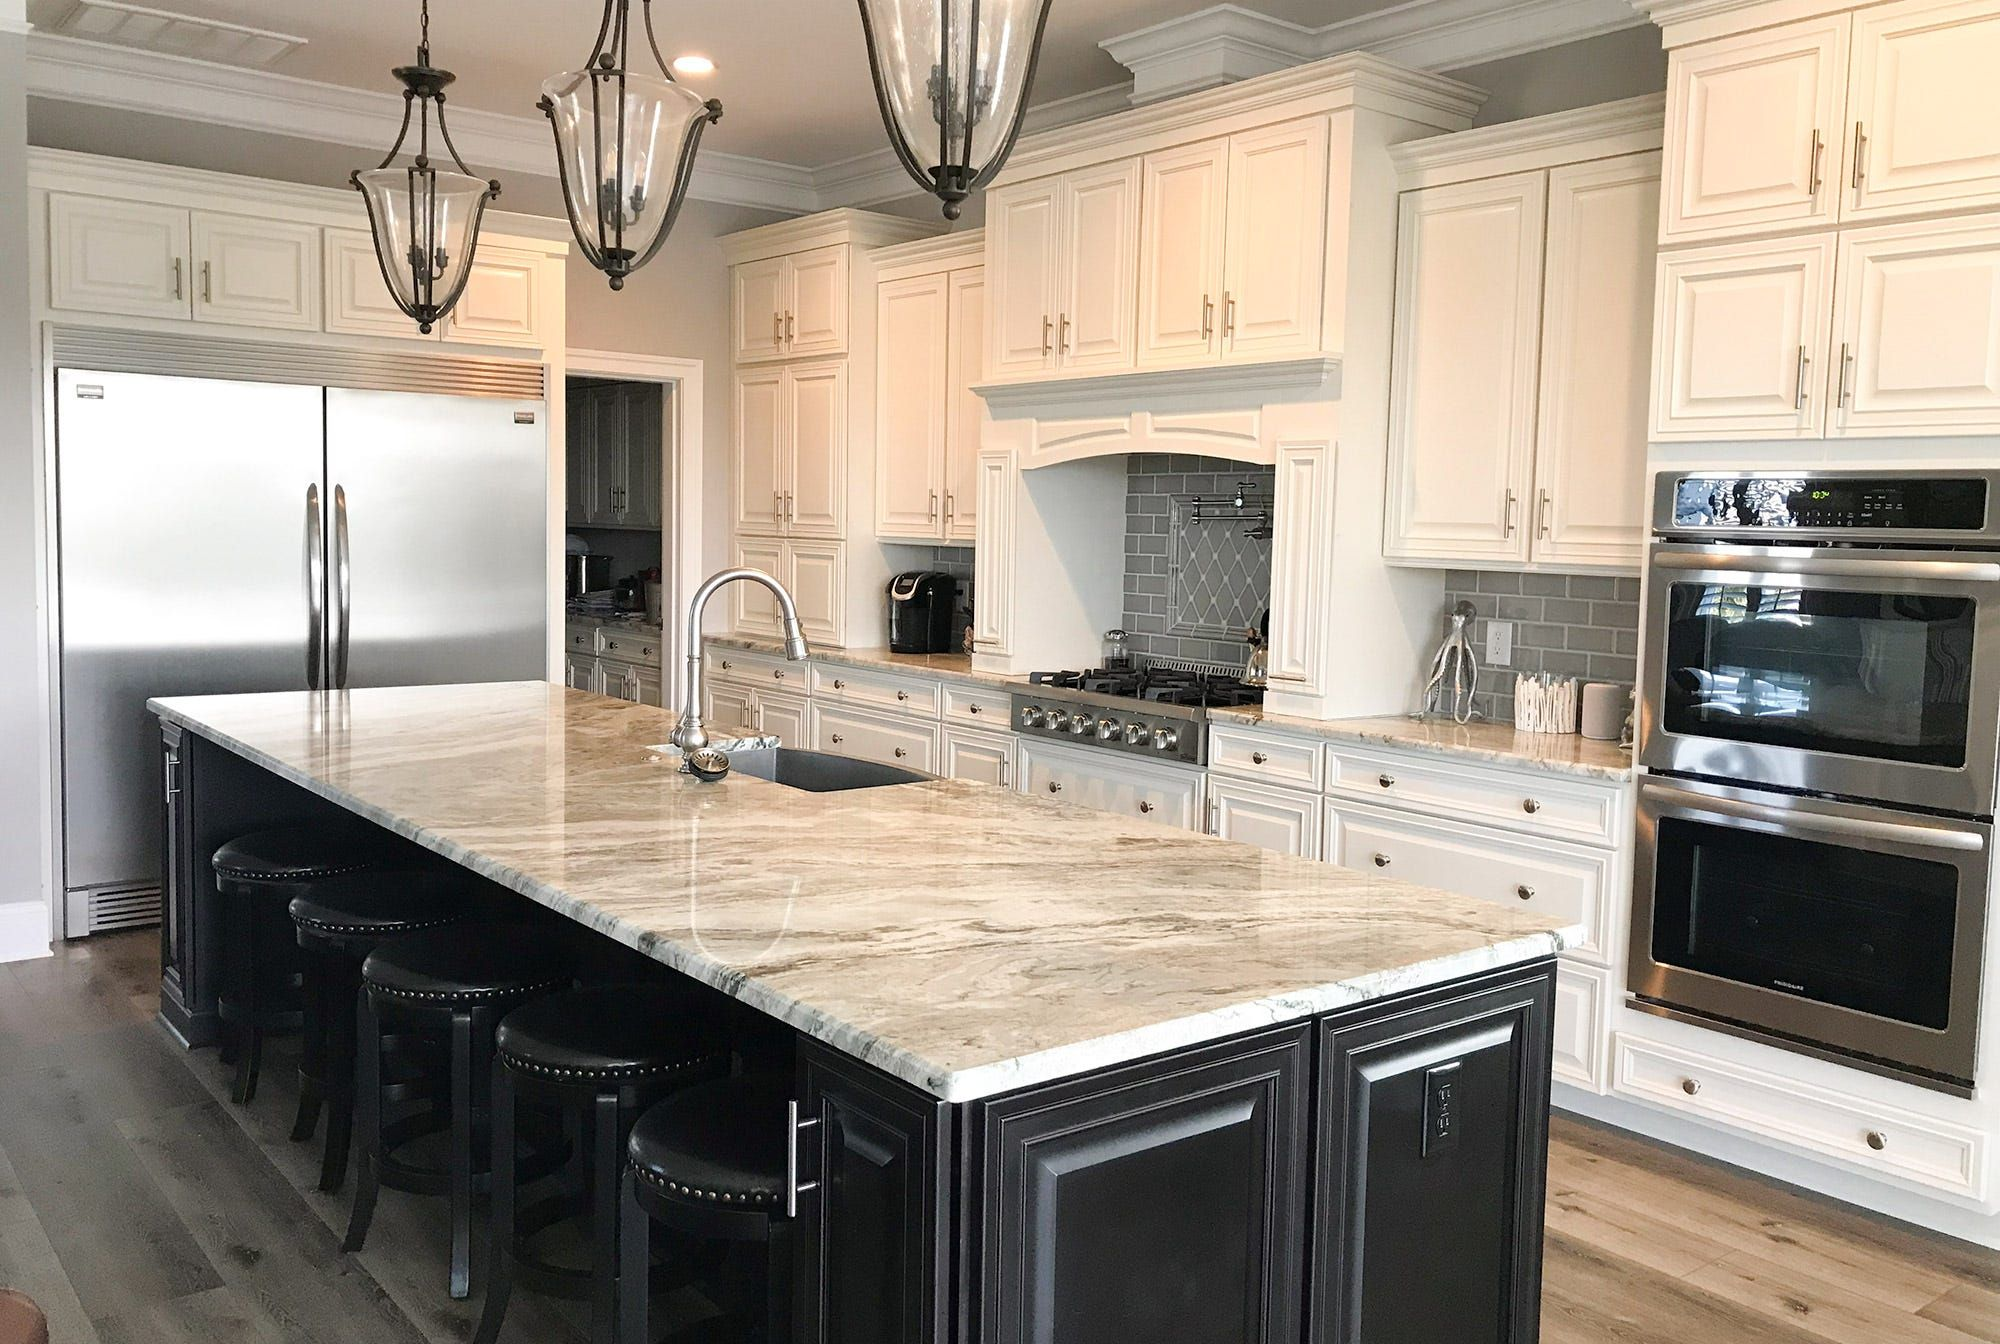 Https Www Cabinets Com Pub Media Atwix Gallery Items Bronson Maple Alabaster 1 1 Jpg In 2020 Ivory Kitchen New Kitchen Cabinets Kitchen Cabinet Colors